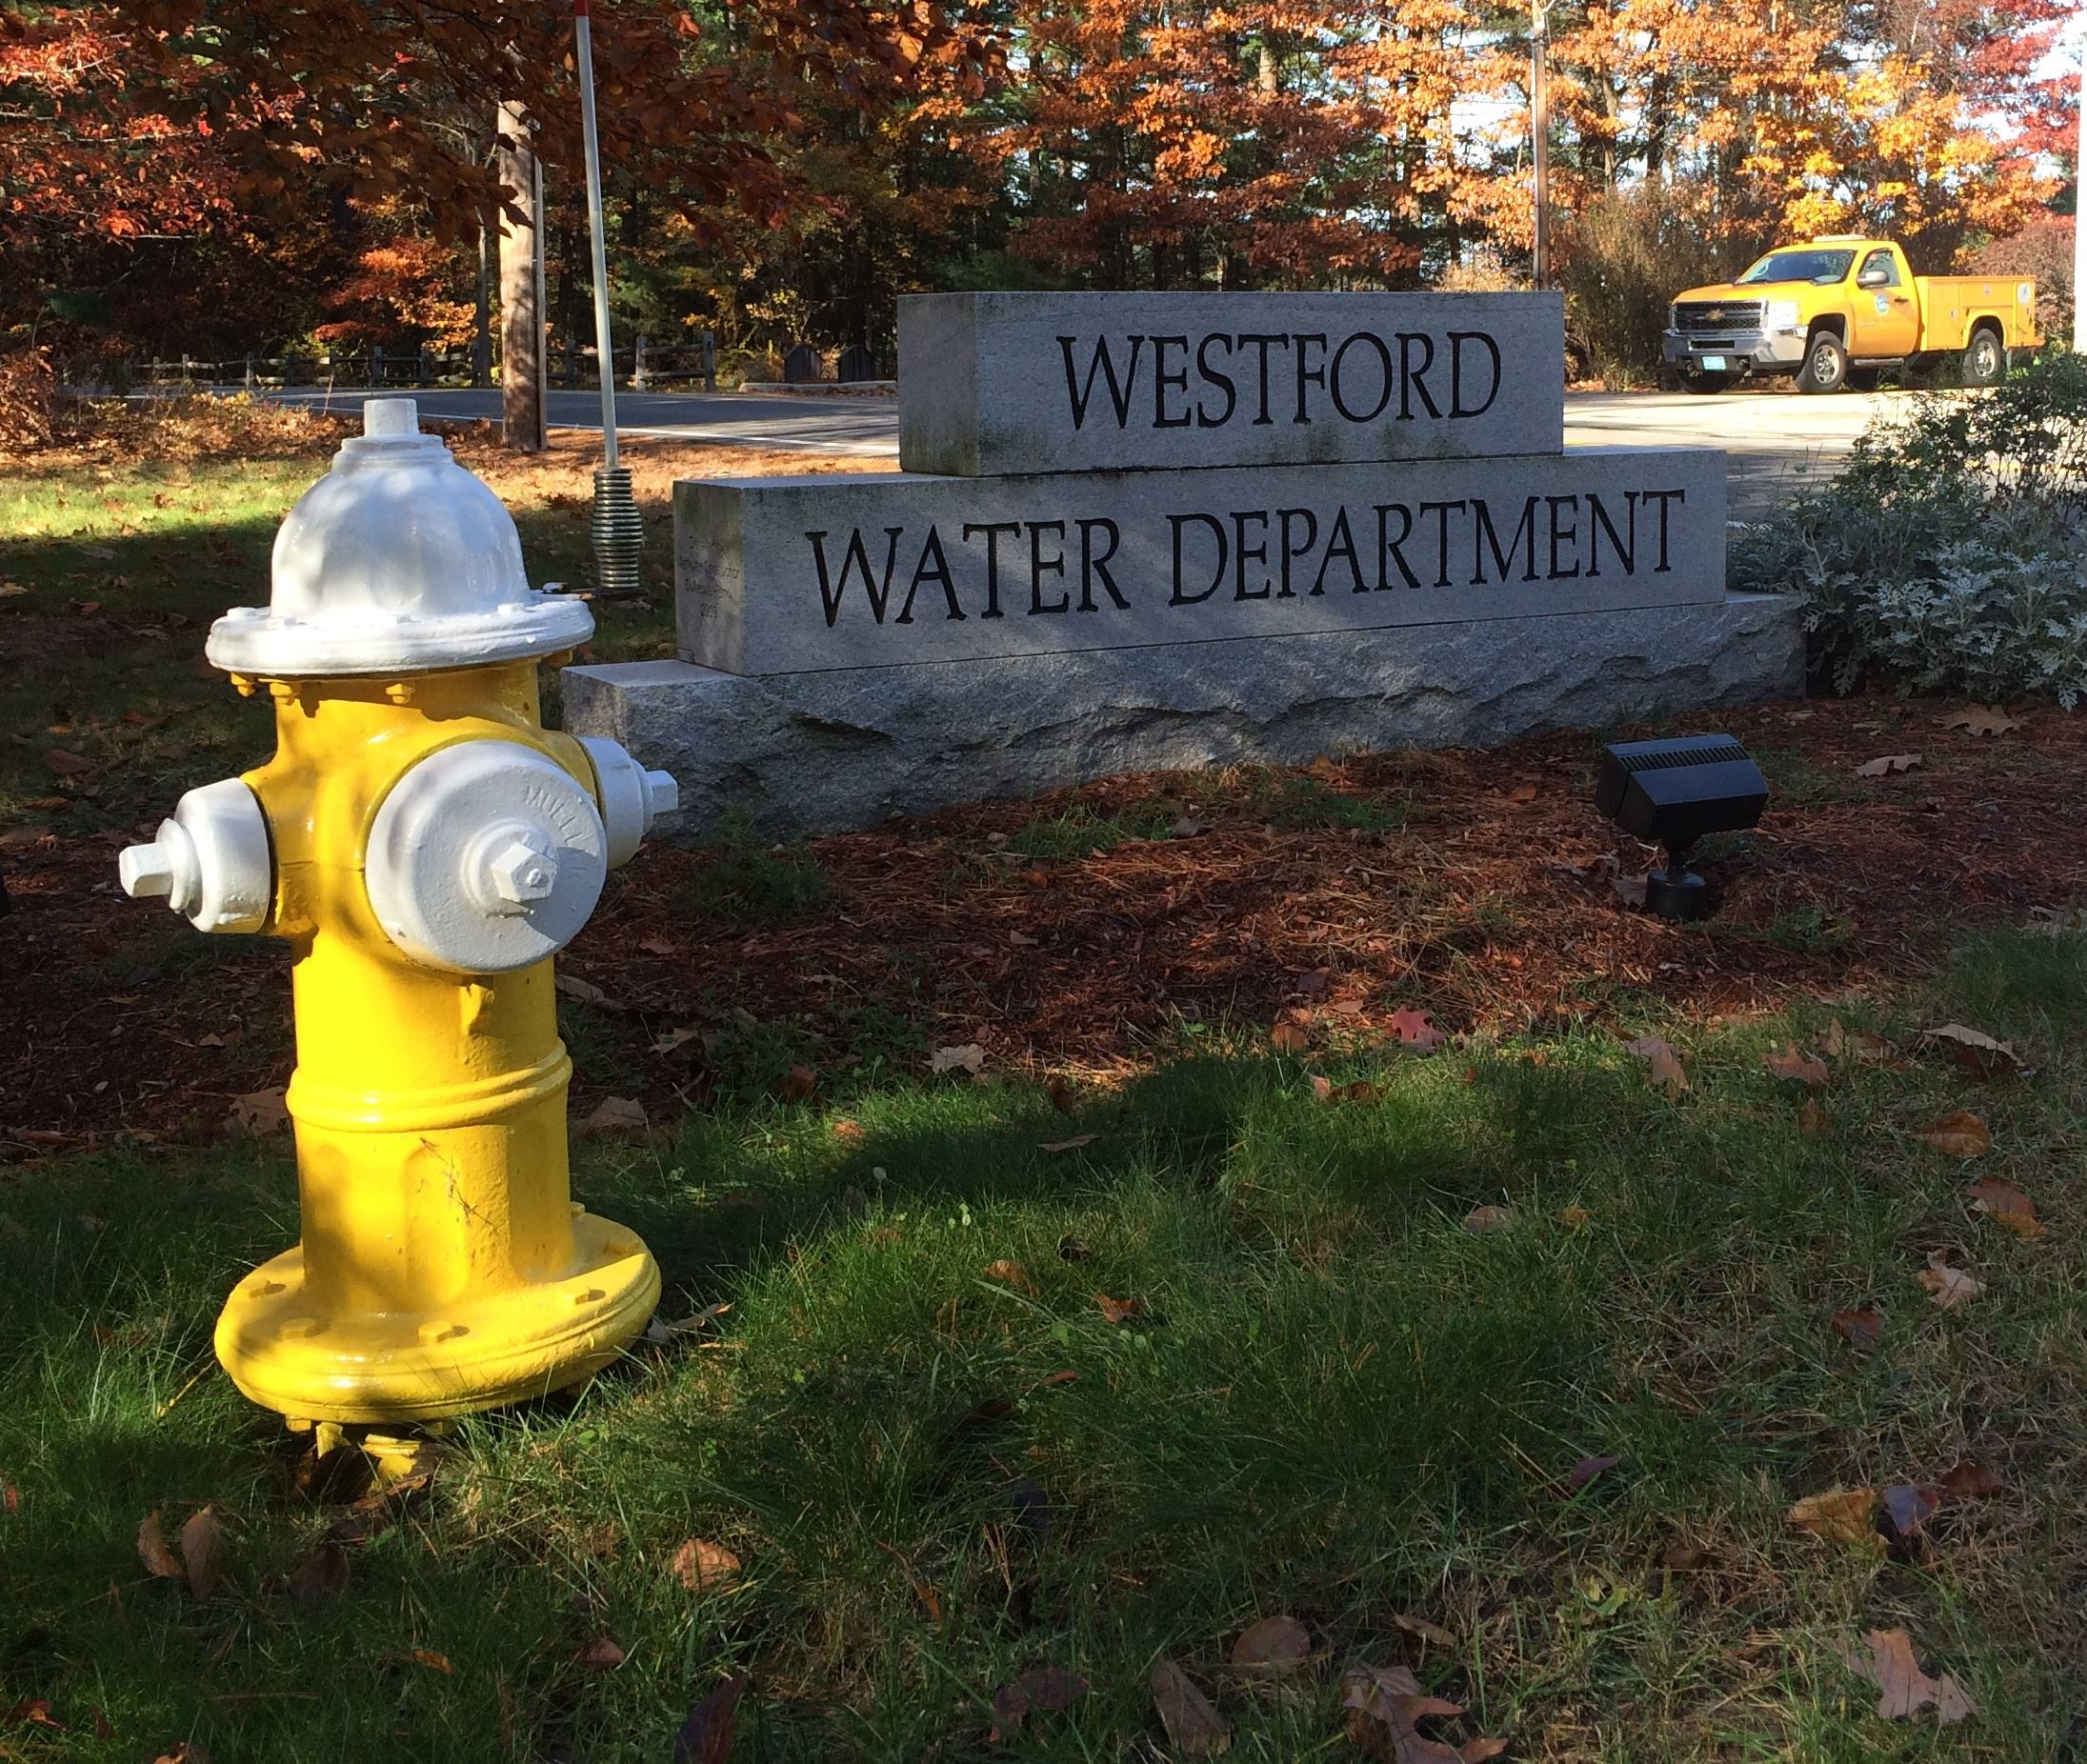 Westford Water Dept sign